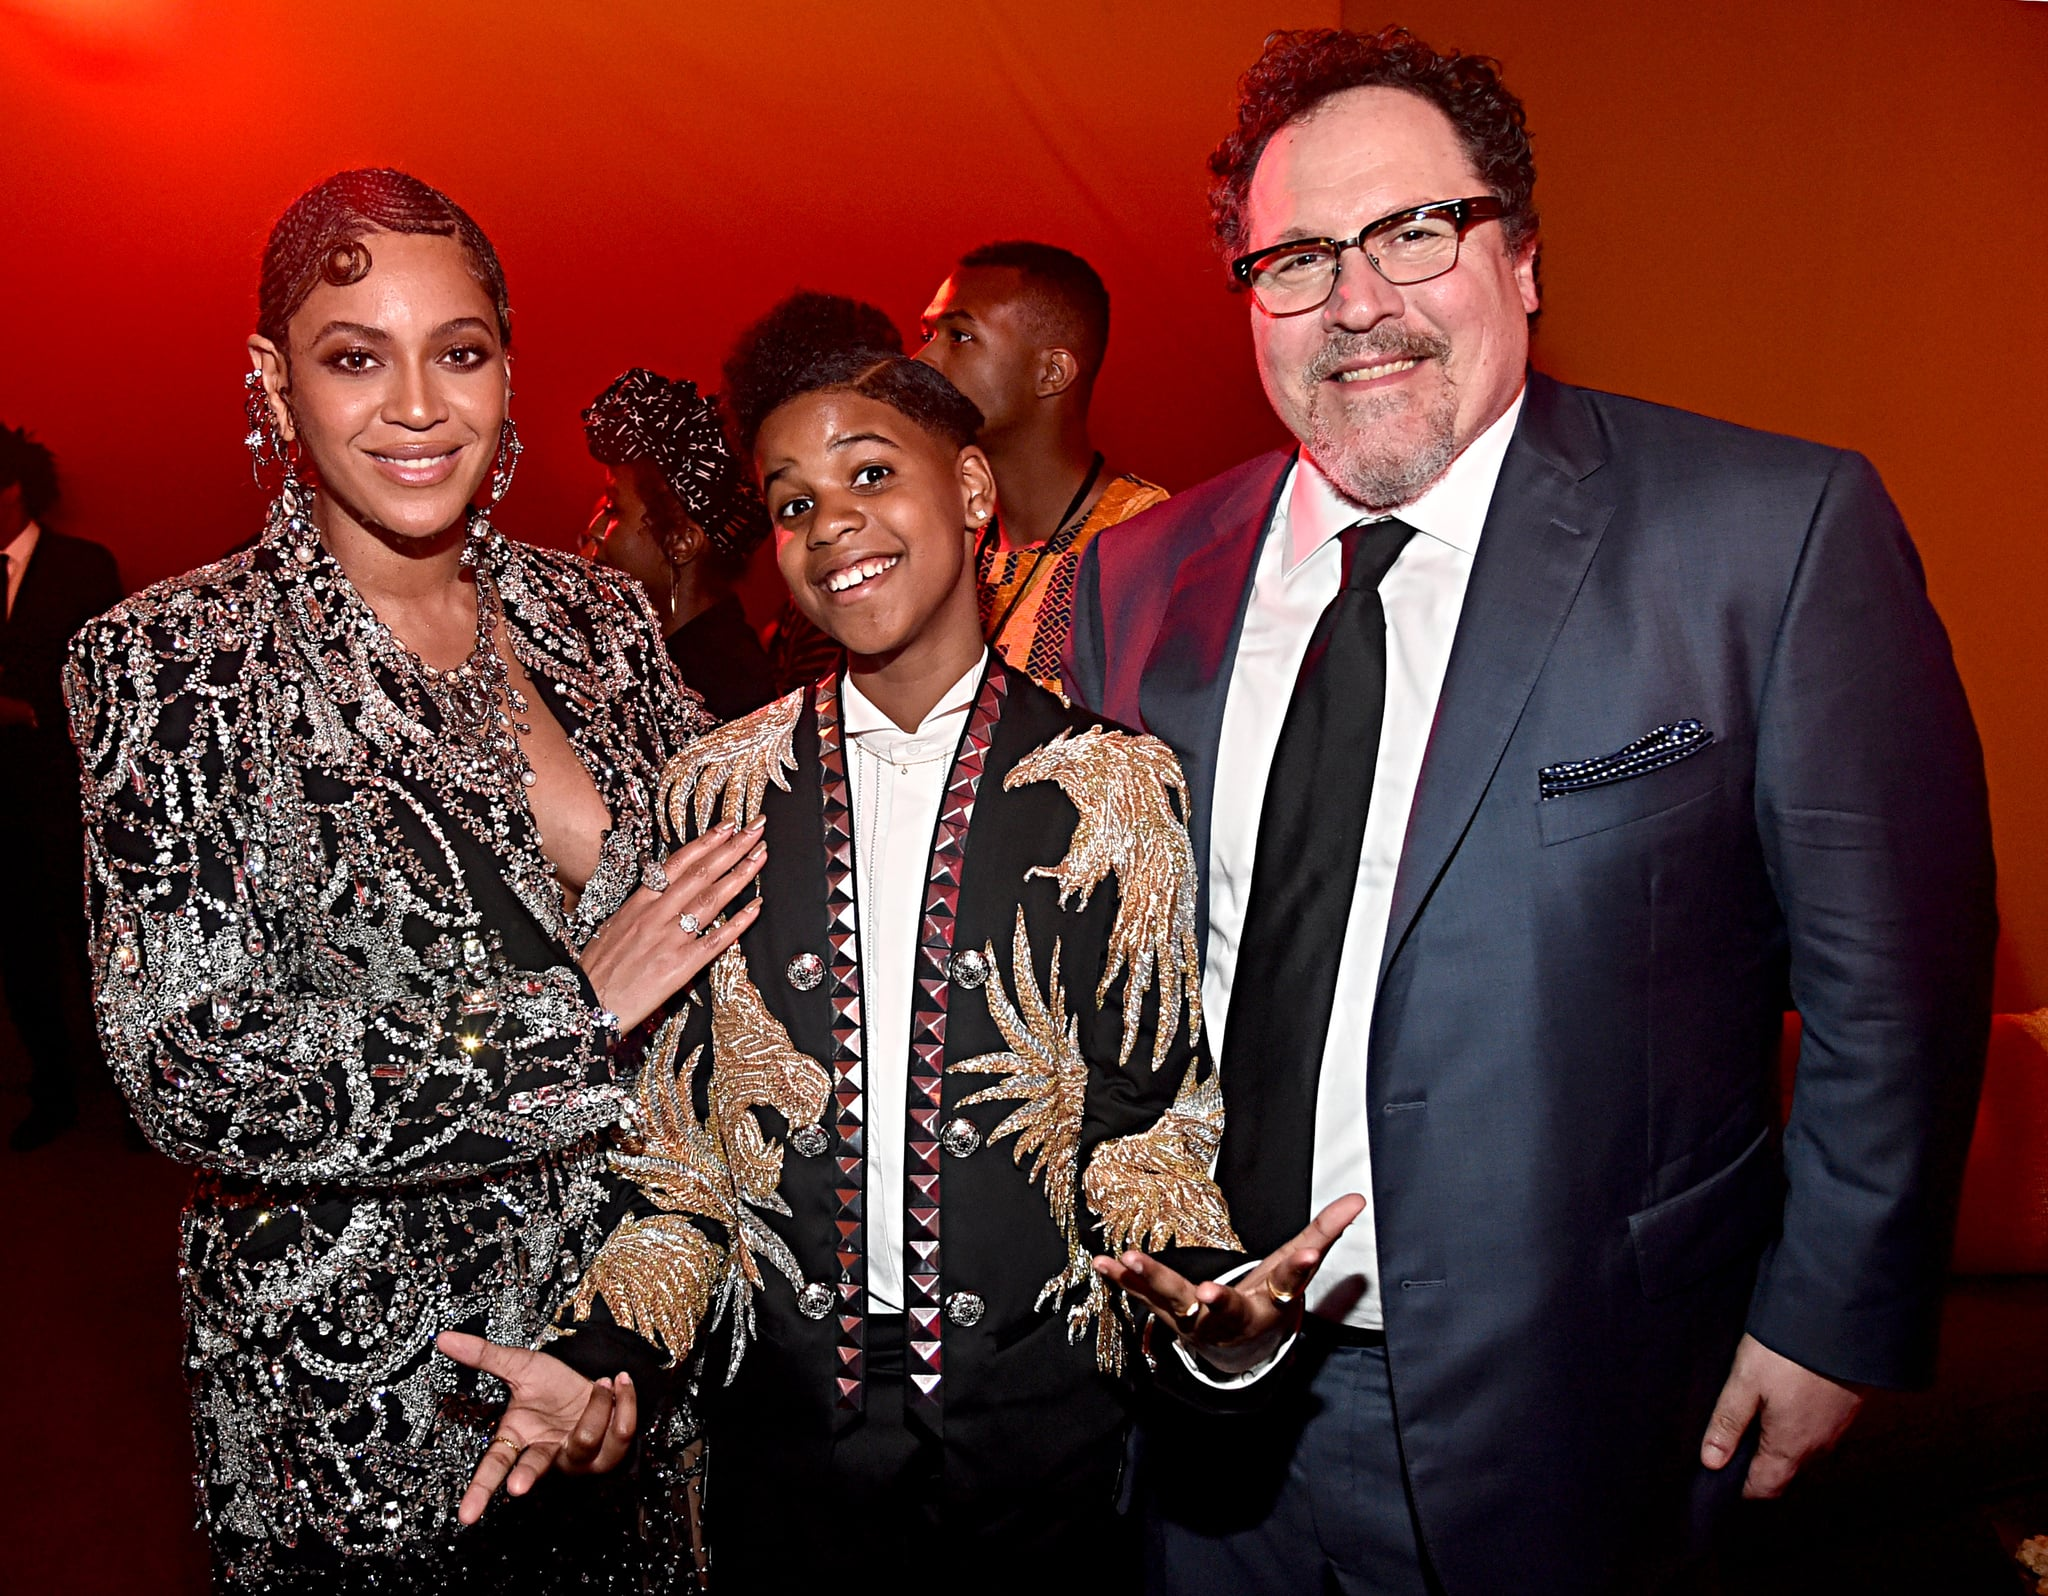 HOLLYWOOD, CALIFORNIA - JULY 09: (L-R) Beyonce Knowles-Carter, JD McCrary and Director/producer Jon Favreau attend the World Premiere of Disney's